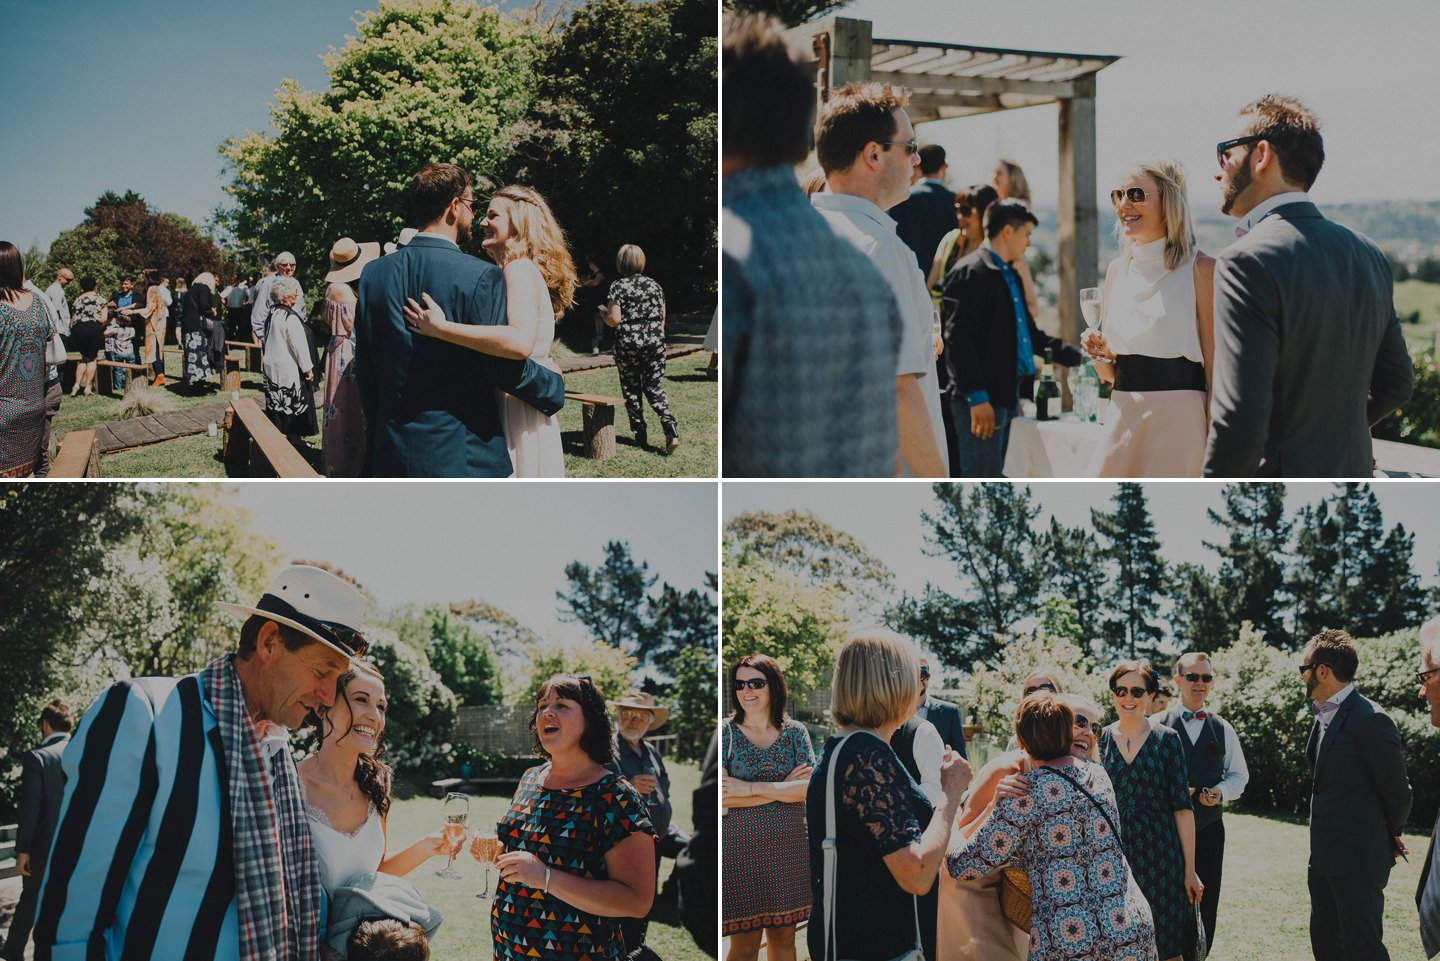 Candid photos of guests enjoying themselves at backyard wedding